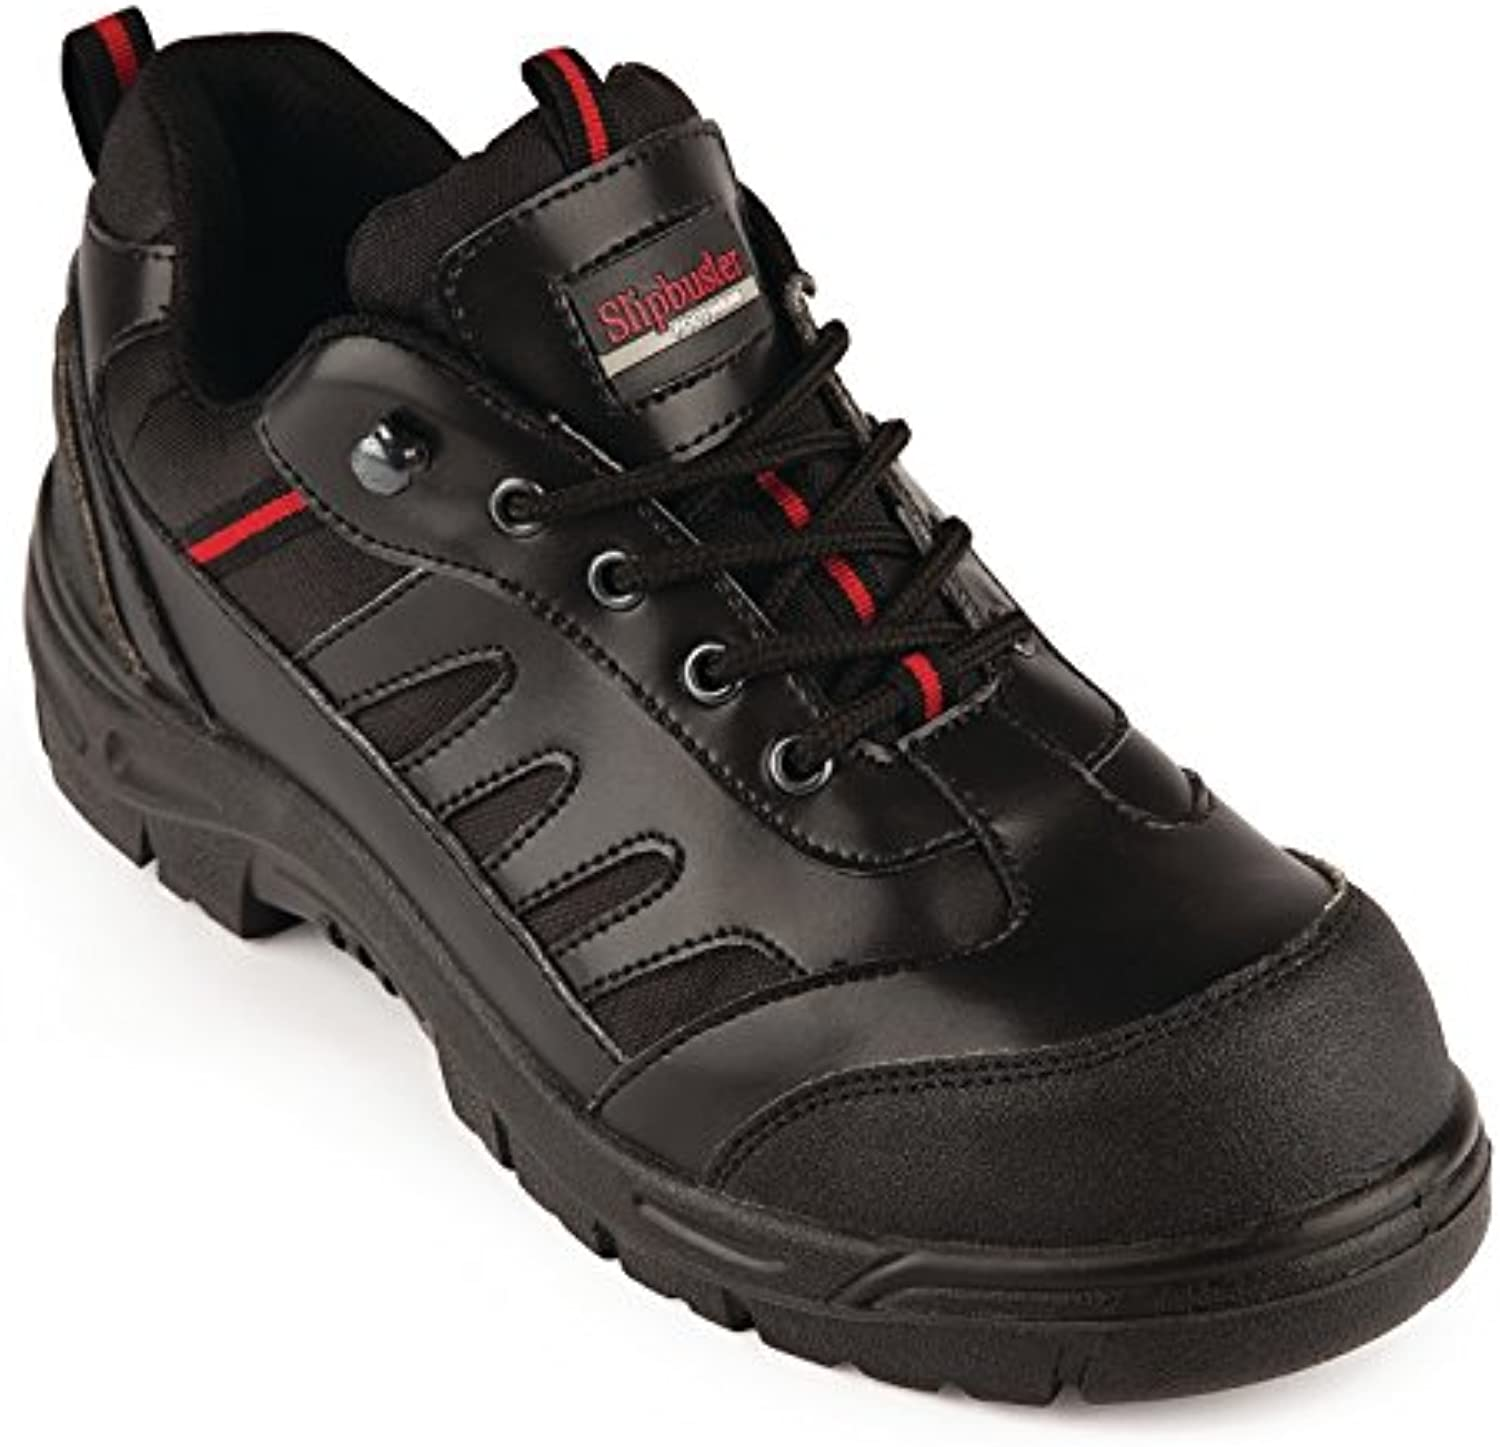 Slipbuster Footwear A314-40 Slip Buster Safety Trainer, Size 40